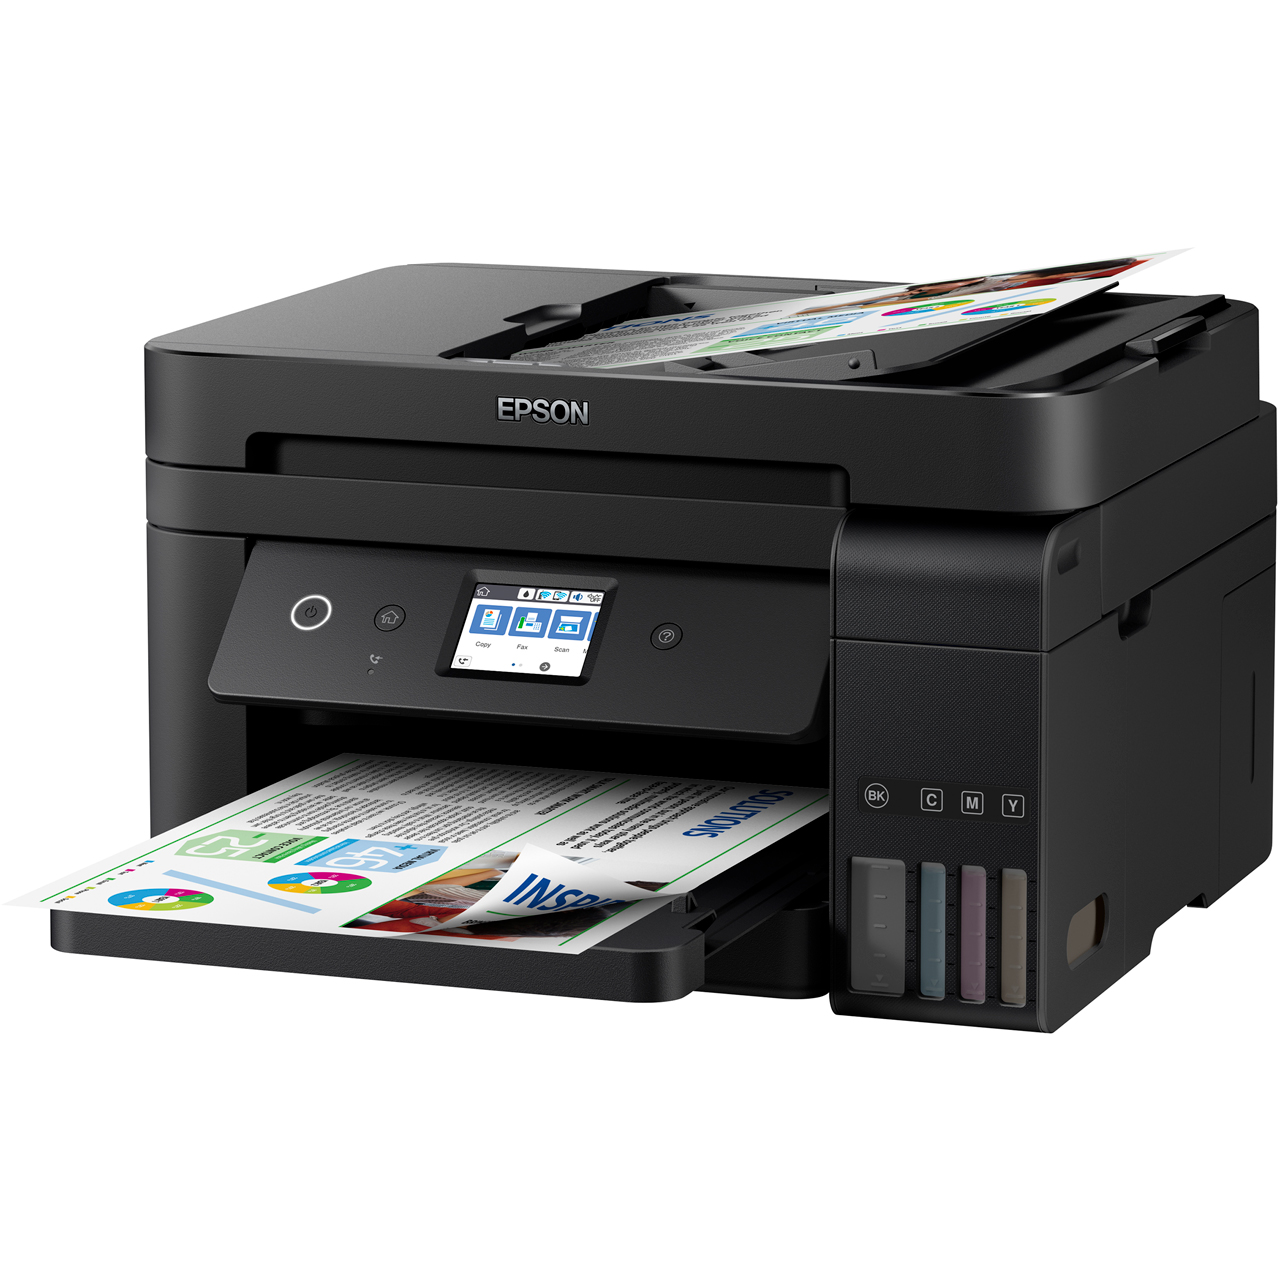 Epson works best with epson. Epson Event Manager Mac Et-4750 / Epson Event Manager ...